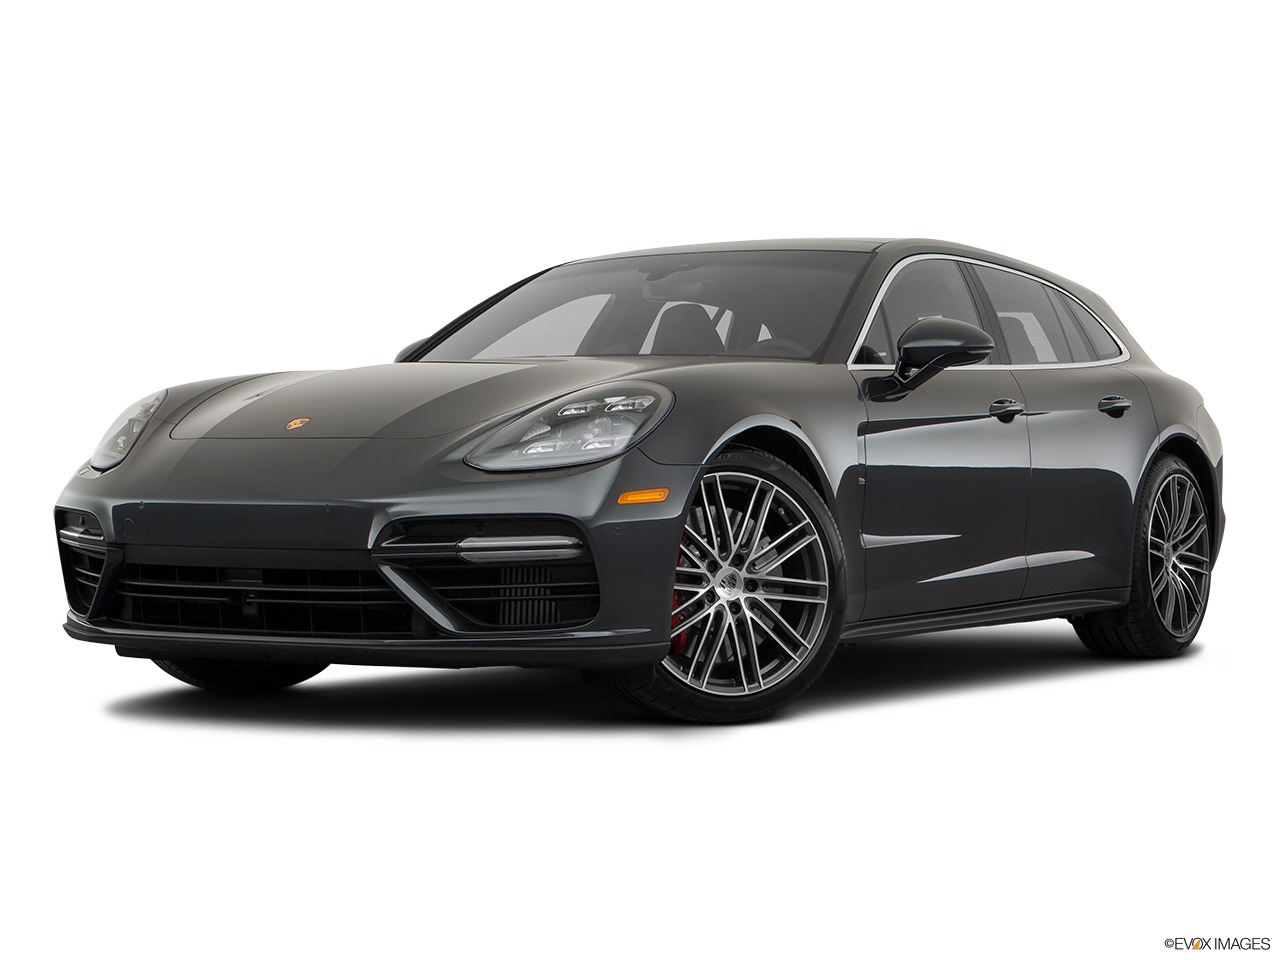 Three quart view of the Porsche Panamera 4 E-Hybrid